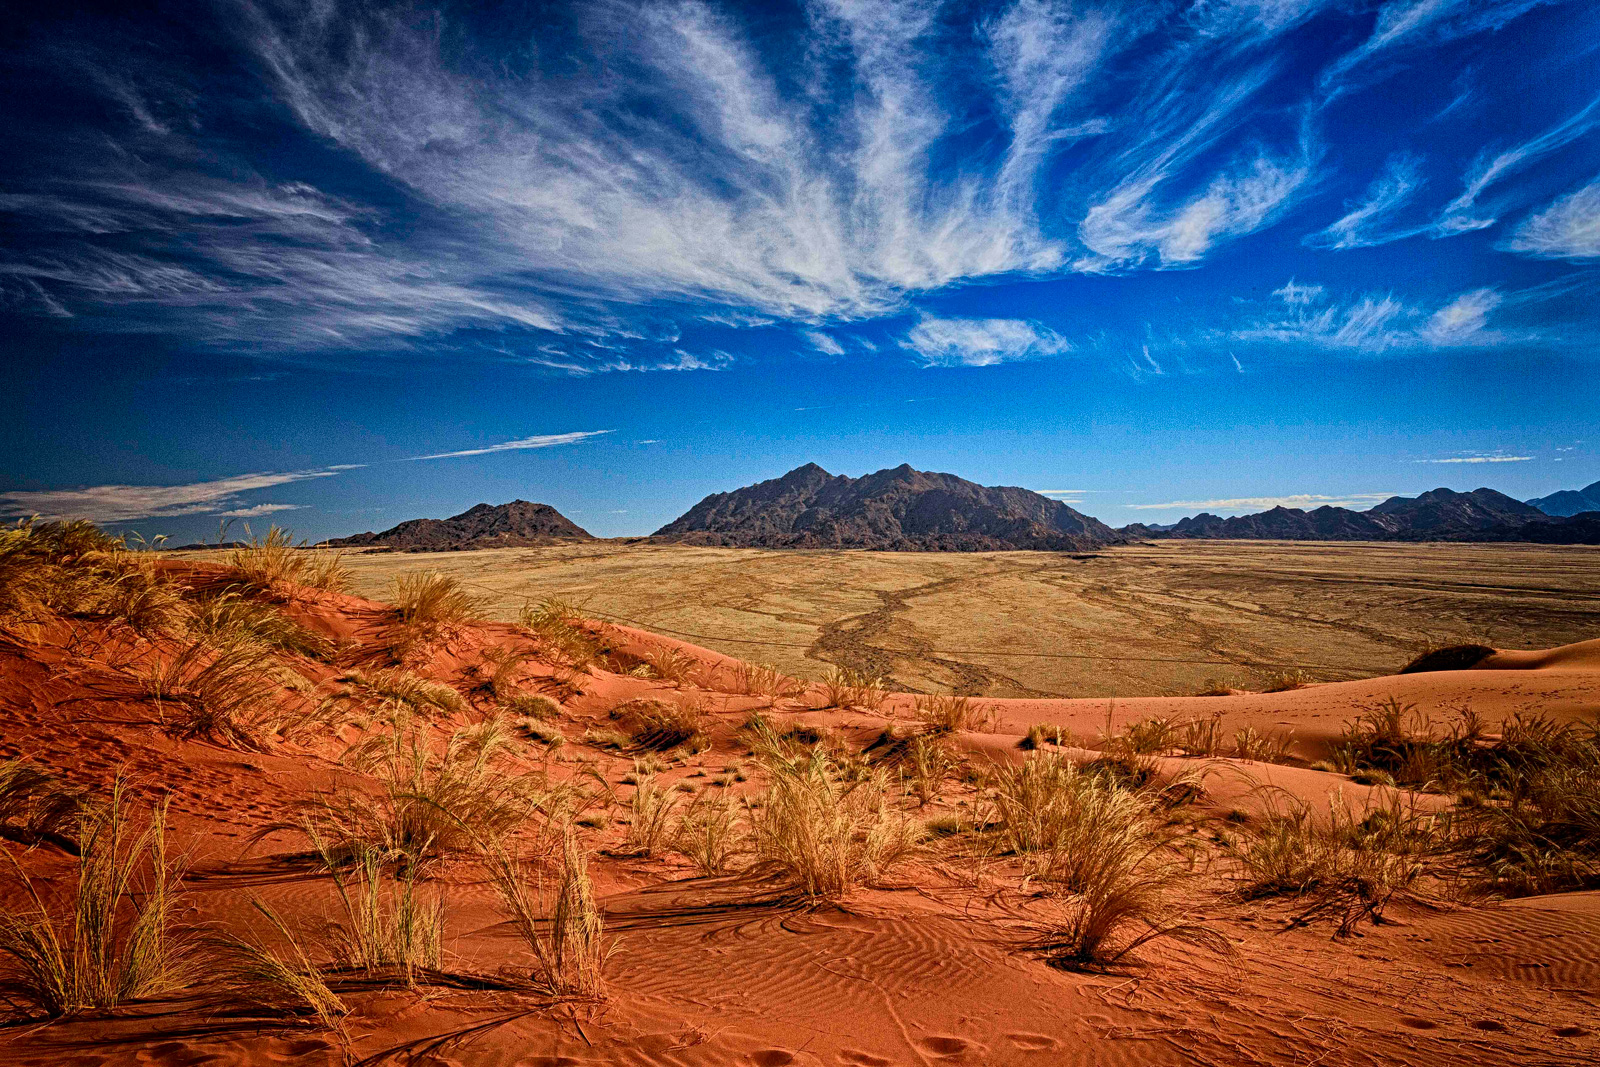 """Desert and mountains"" in Namib-Naukluft National Park, Namibia ©Charlie Lynam"